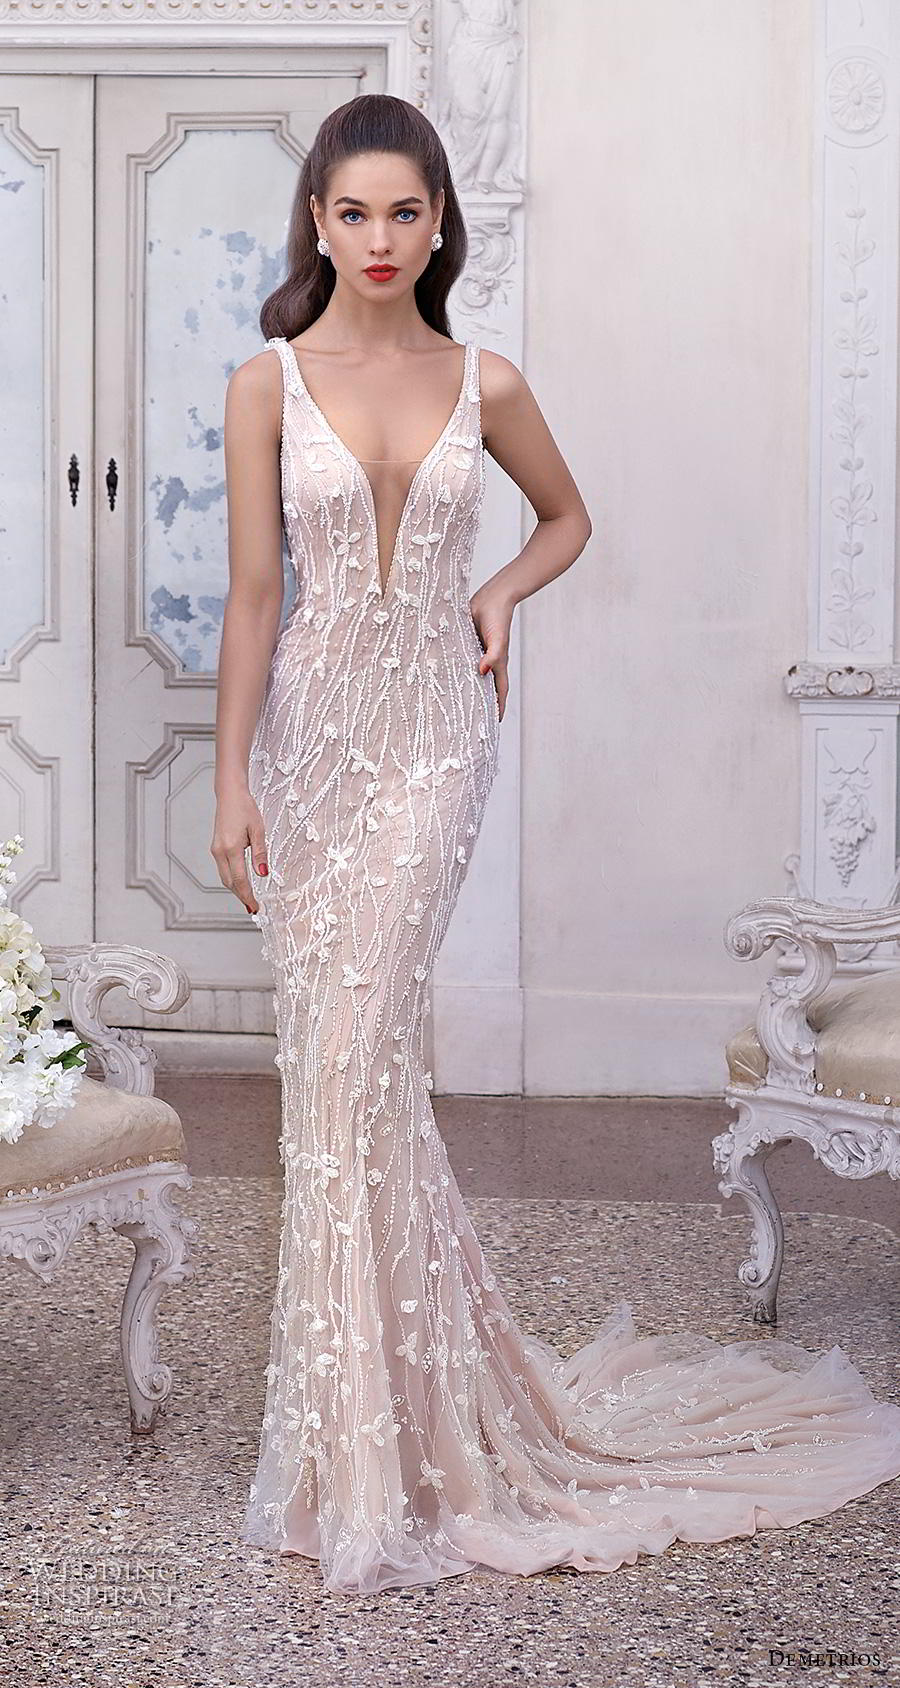 demetrios 2019 bridal sleeveless deep plunging v neck full emebllishment glamorous elegant sheath fit and flare wedding dress backless sccop back medium train (16) mv